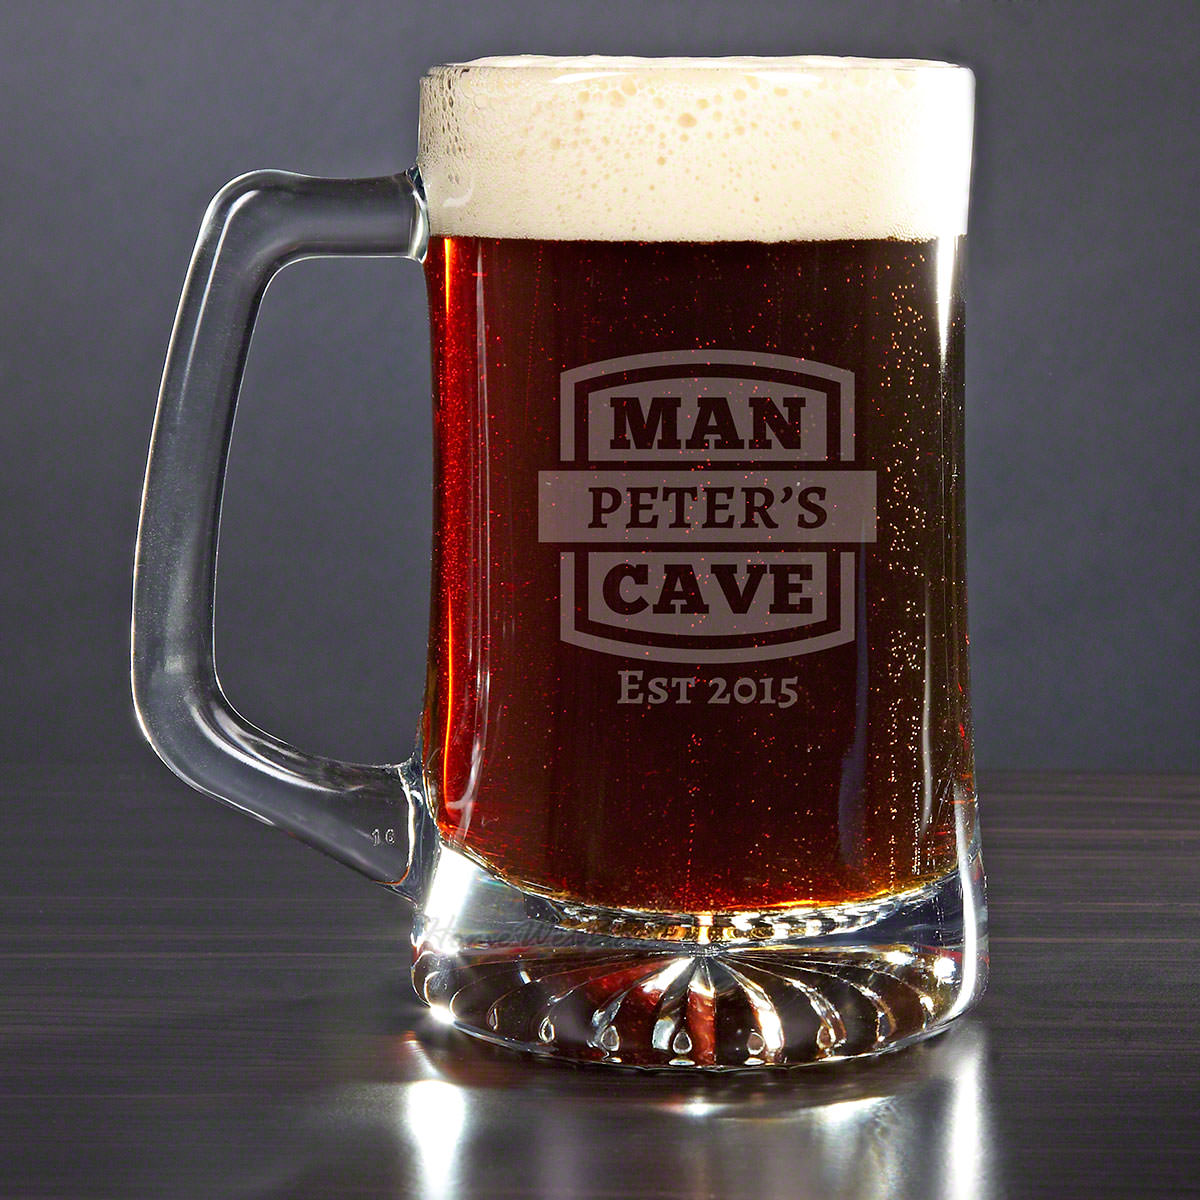 Man Cave Personalized Beer Mug with Name and Date